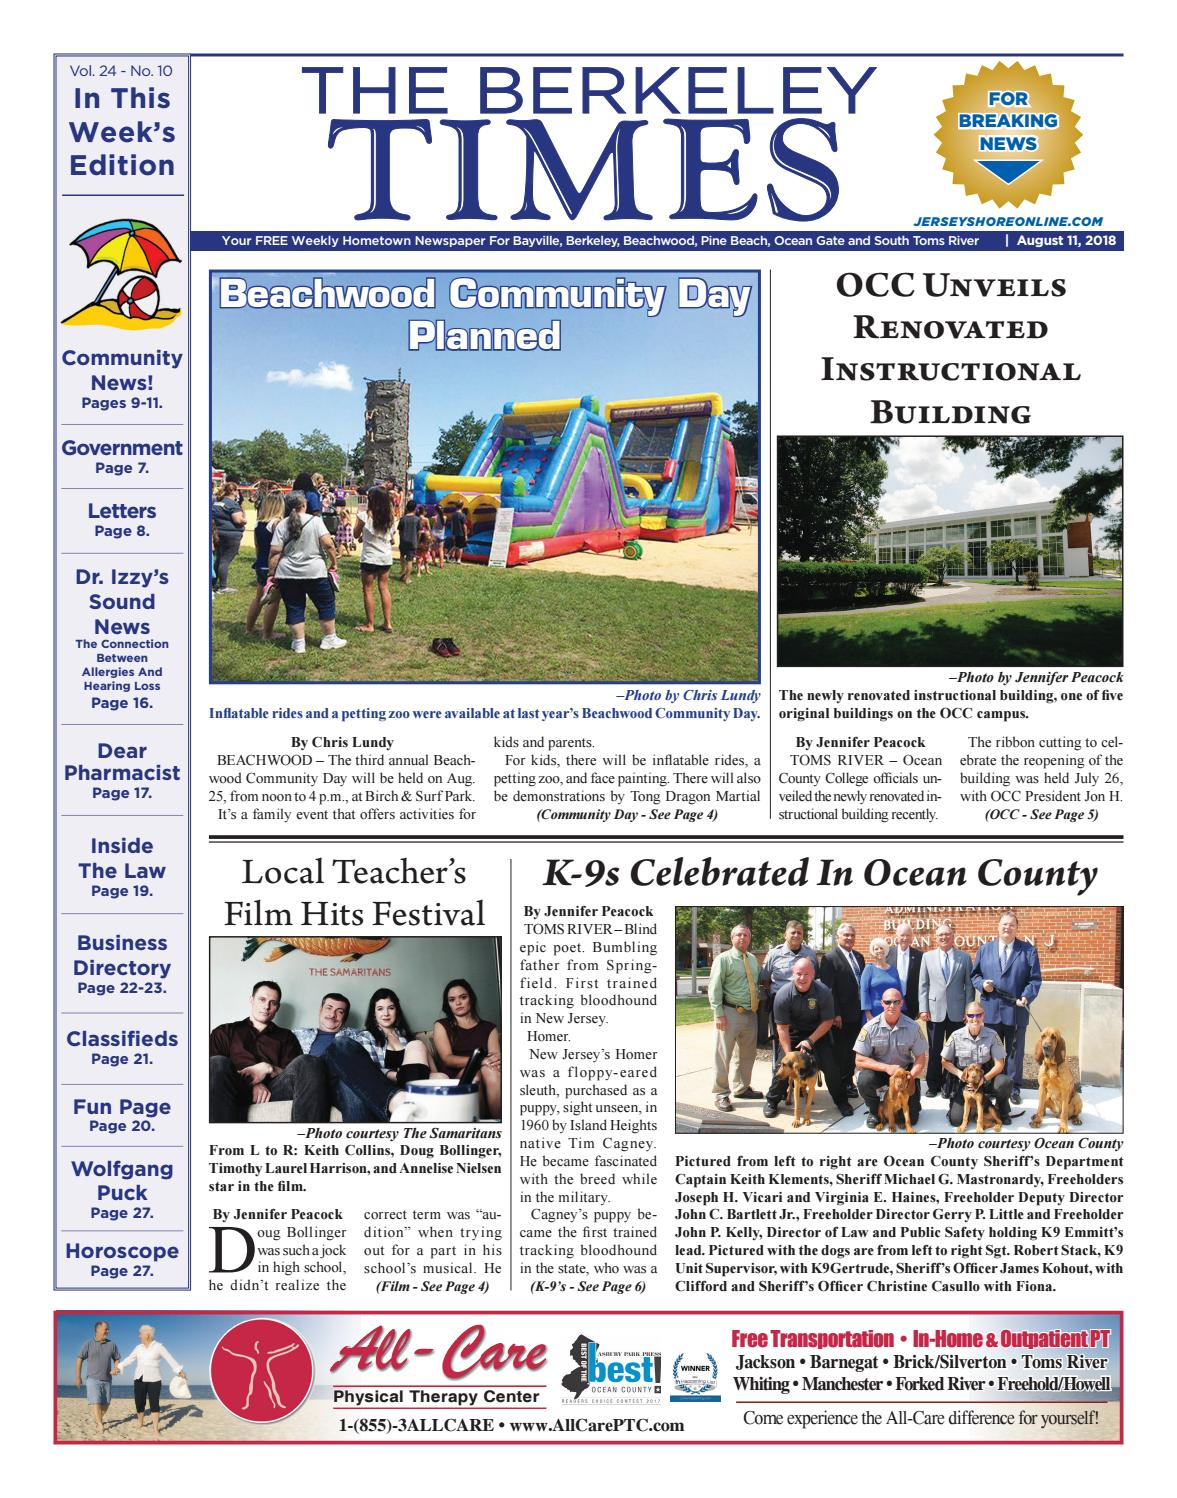 2018-08-11 - The Berkeley Times by Micromedia Publications